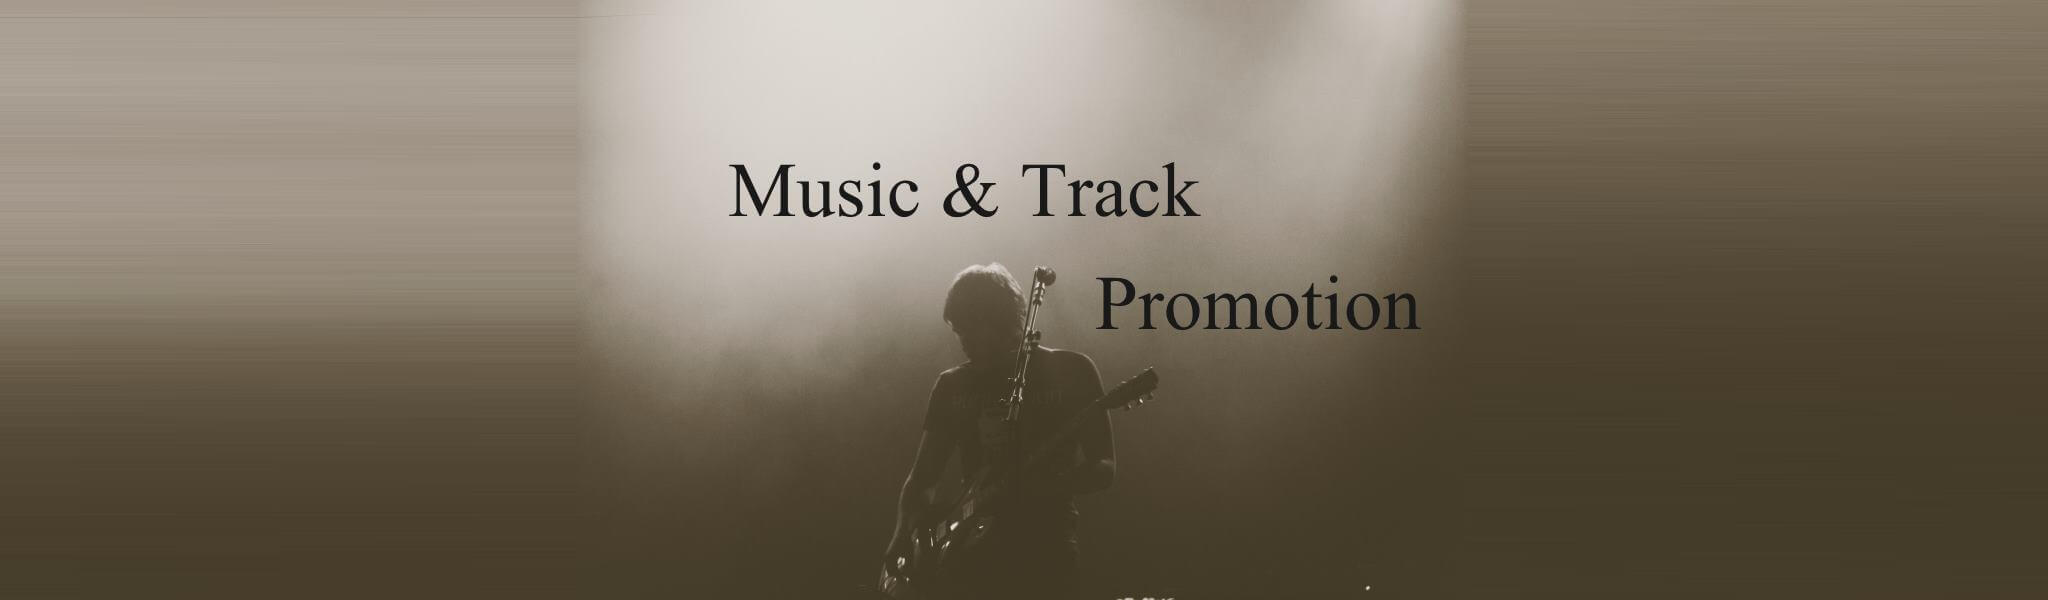 Advertise your Tracks